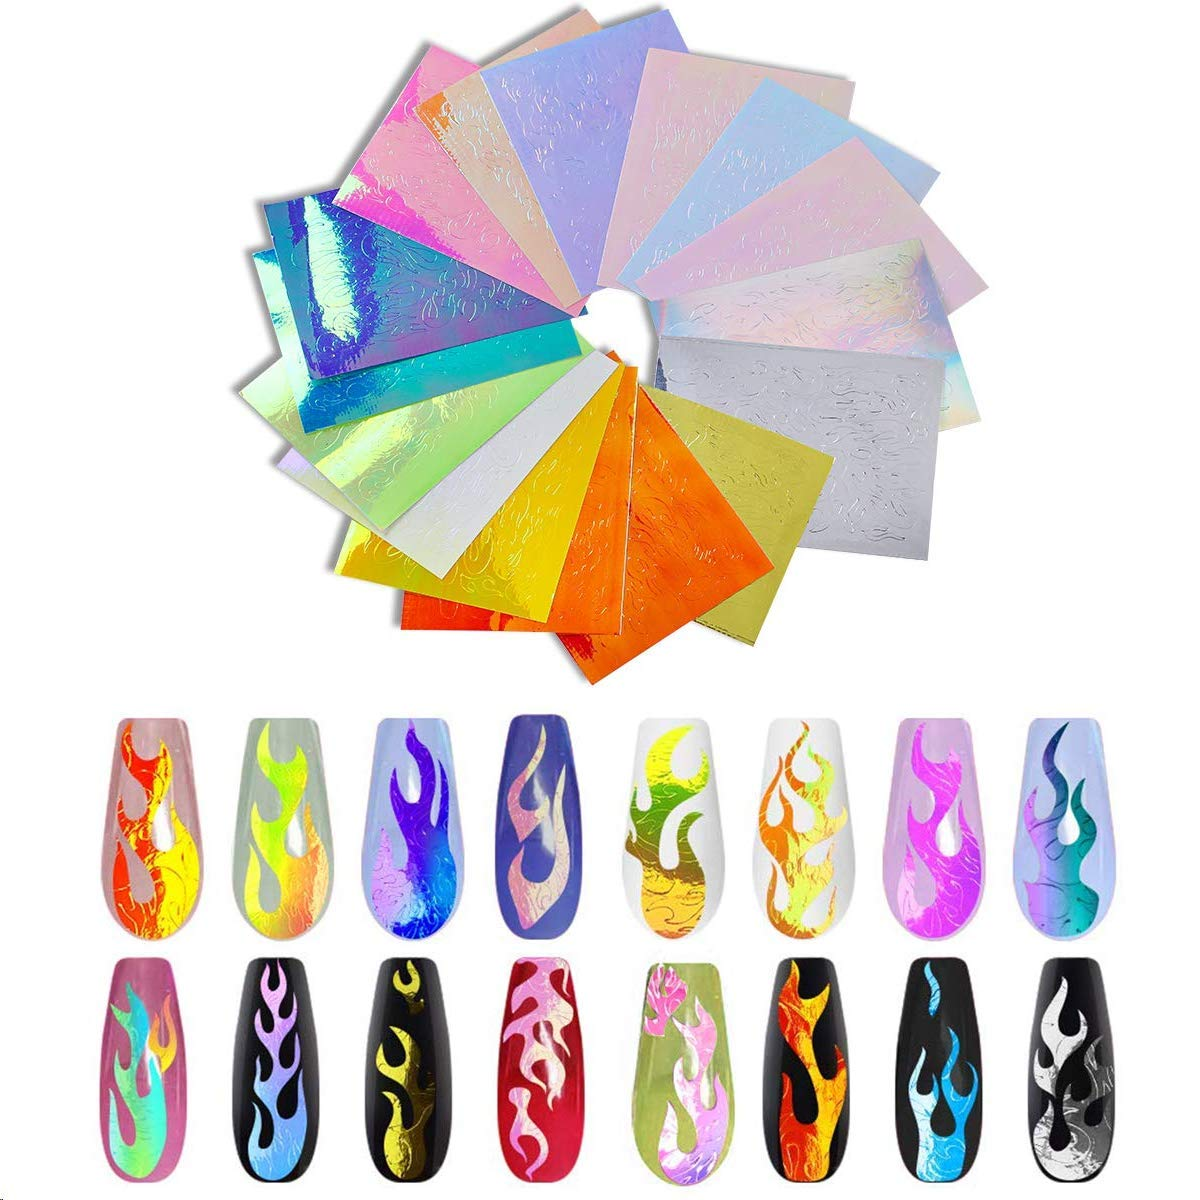 32Pcs Flame Reflections Nail Stickers, Holographic Fire Nail Stickers and DIY 3D Vinyls Art Decals, Reflections Nail Stencil for Nails Manicure Tape Adhesive Foils Decoration